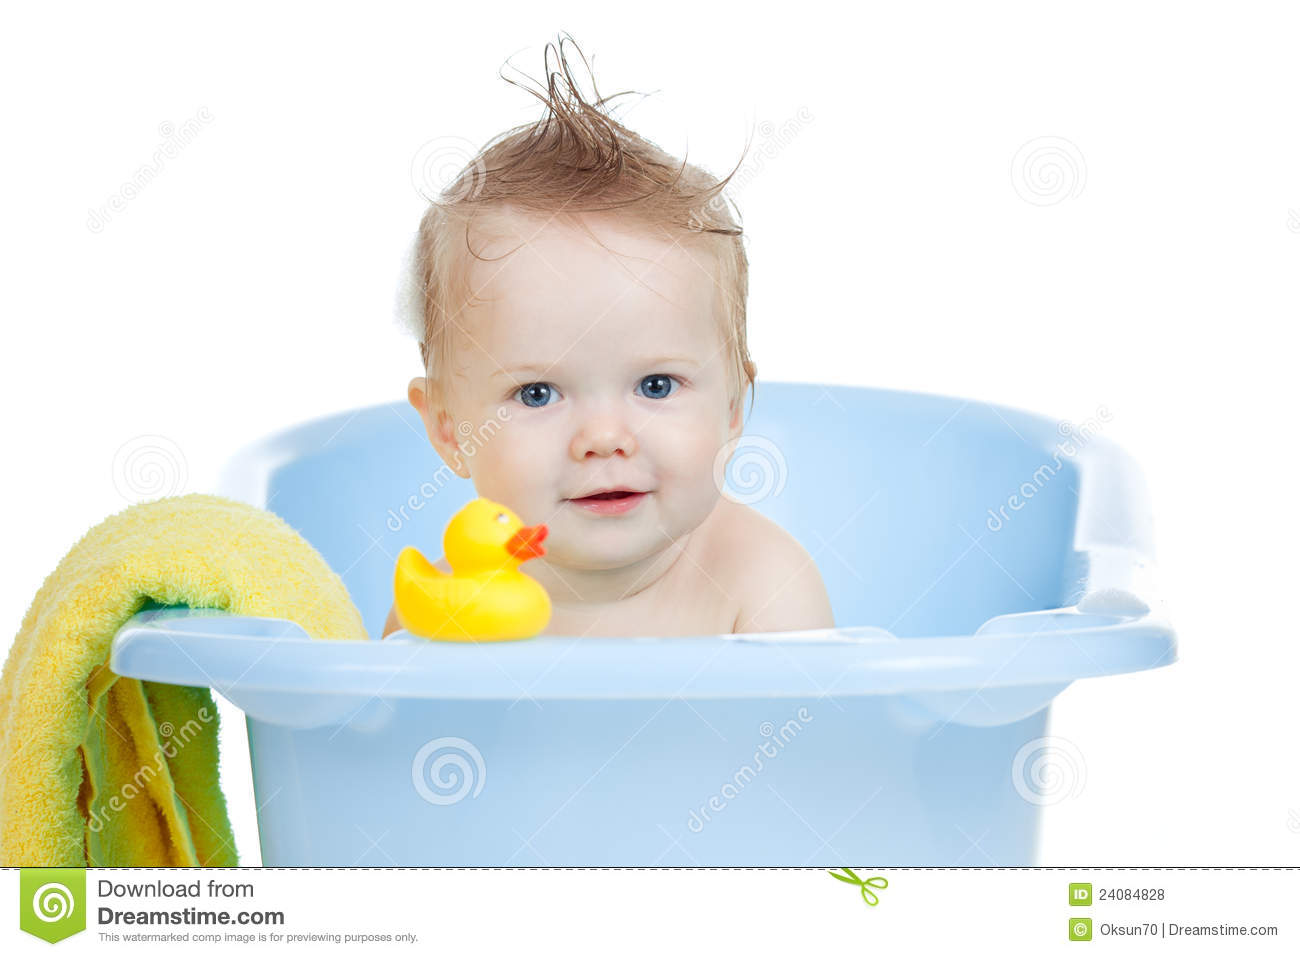 Pretty Baby Having Bath In Blue Tub Stock Photo - Image of care ...